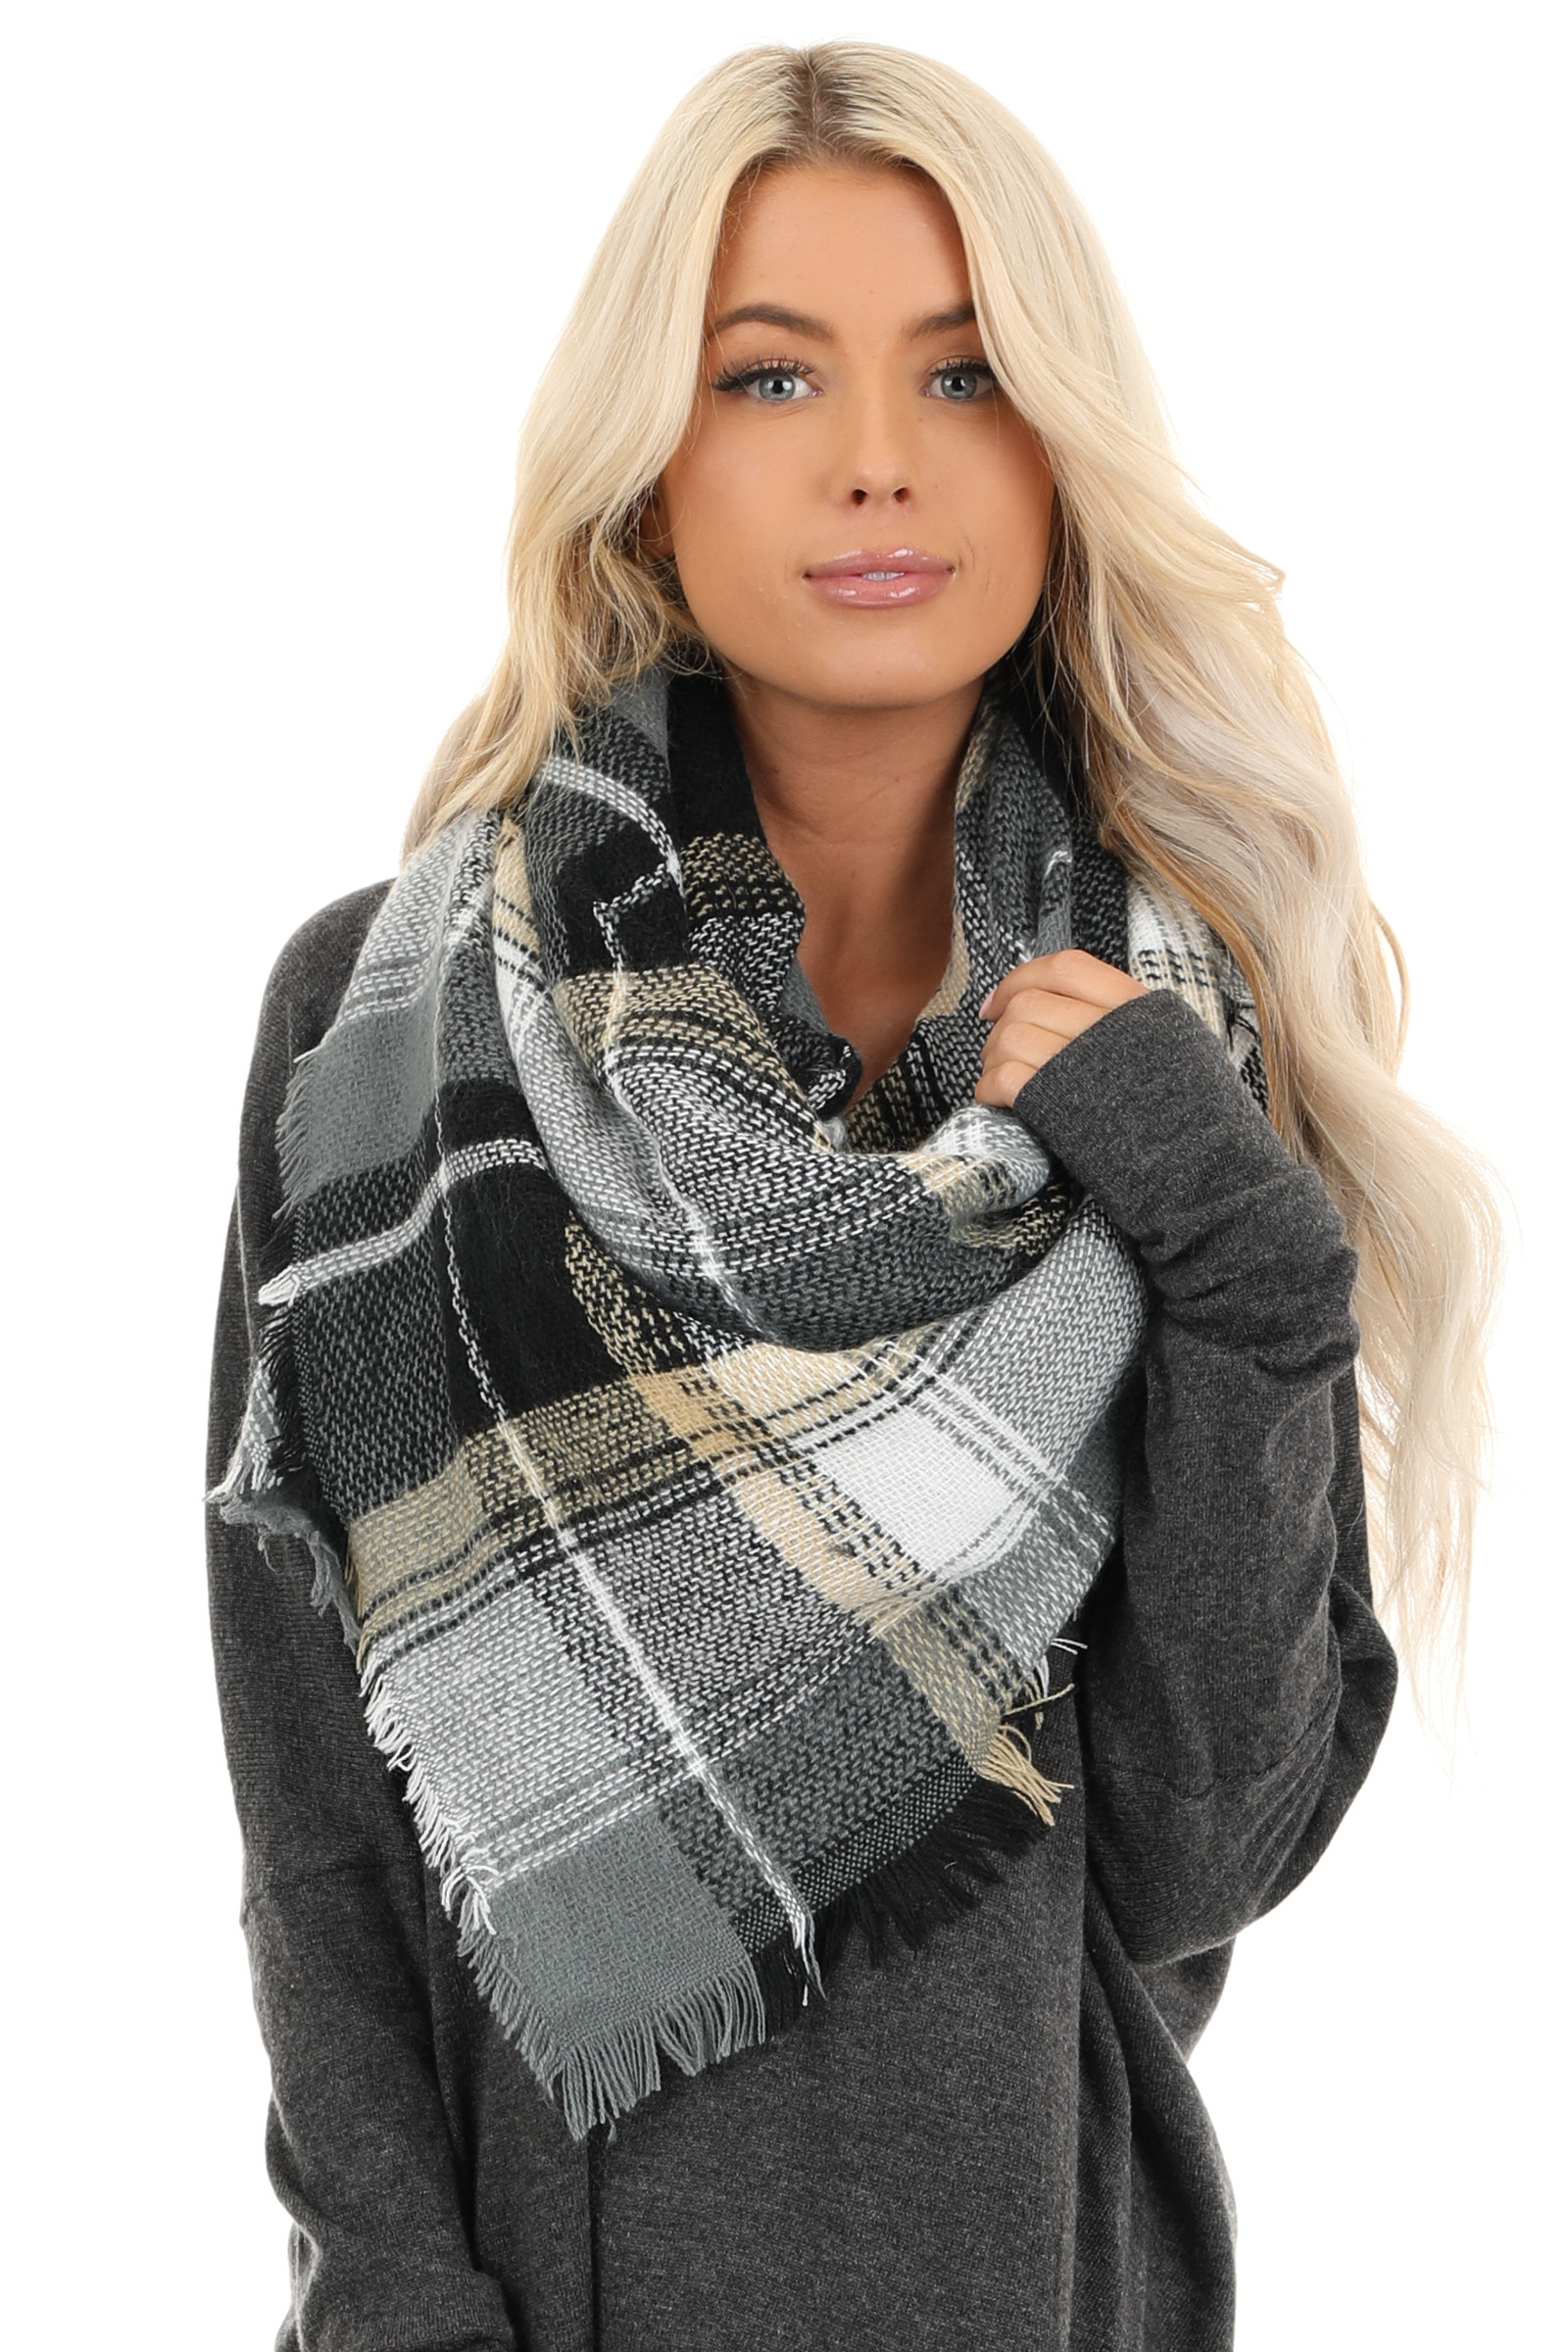 Charcoal Black and Tan Plaid Print Blanket Scarf with Fringe